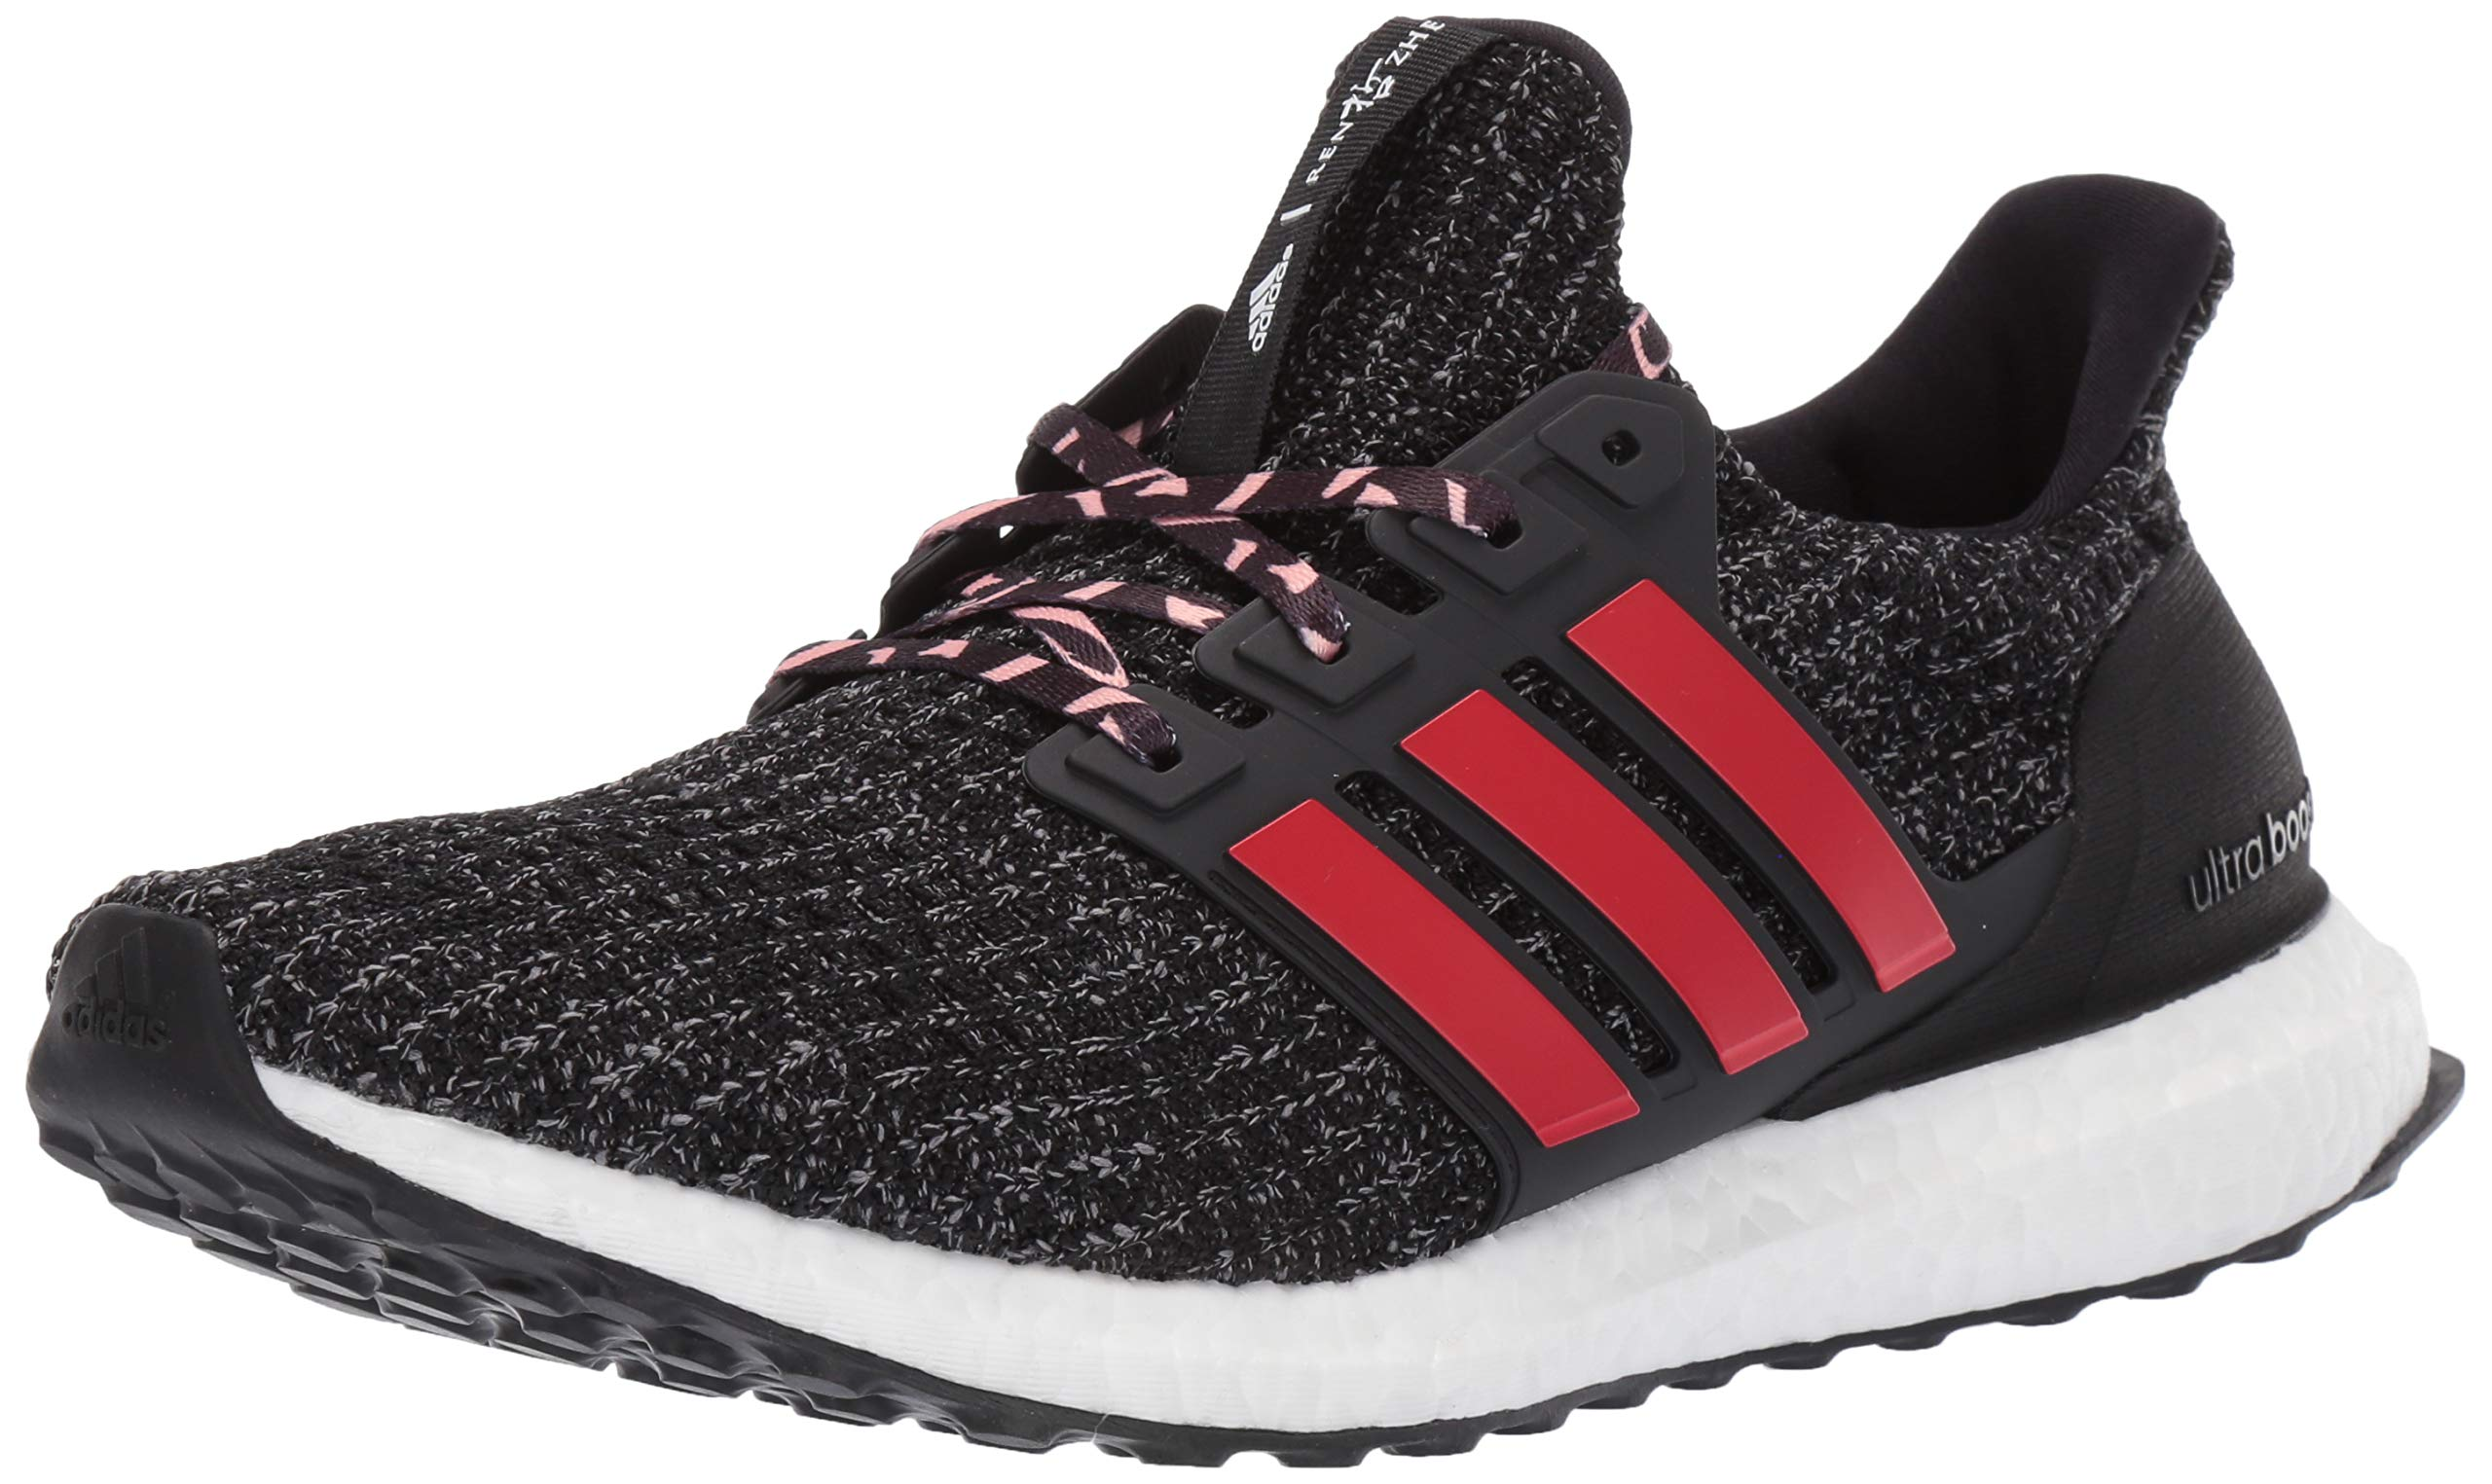 adidas Men's Ultraboost, Black/Scarlet/Grey 4 M US by adidas (Image #1)